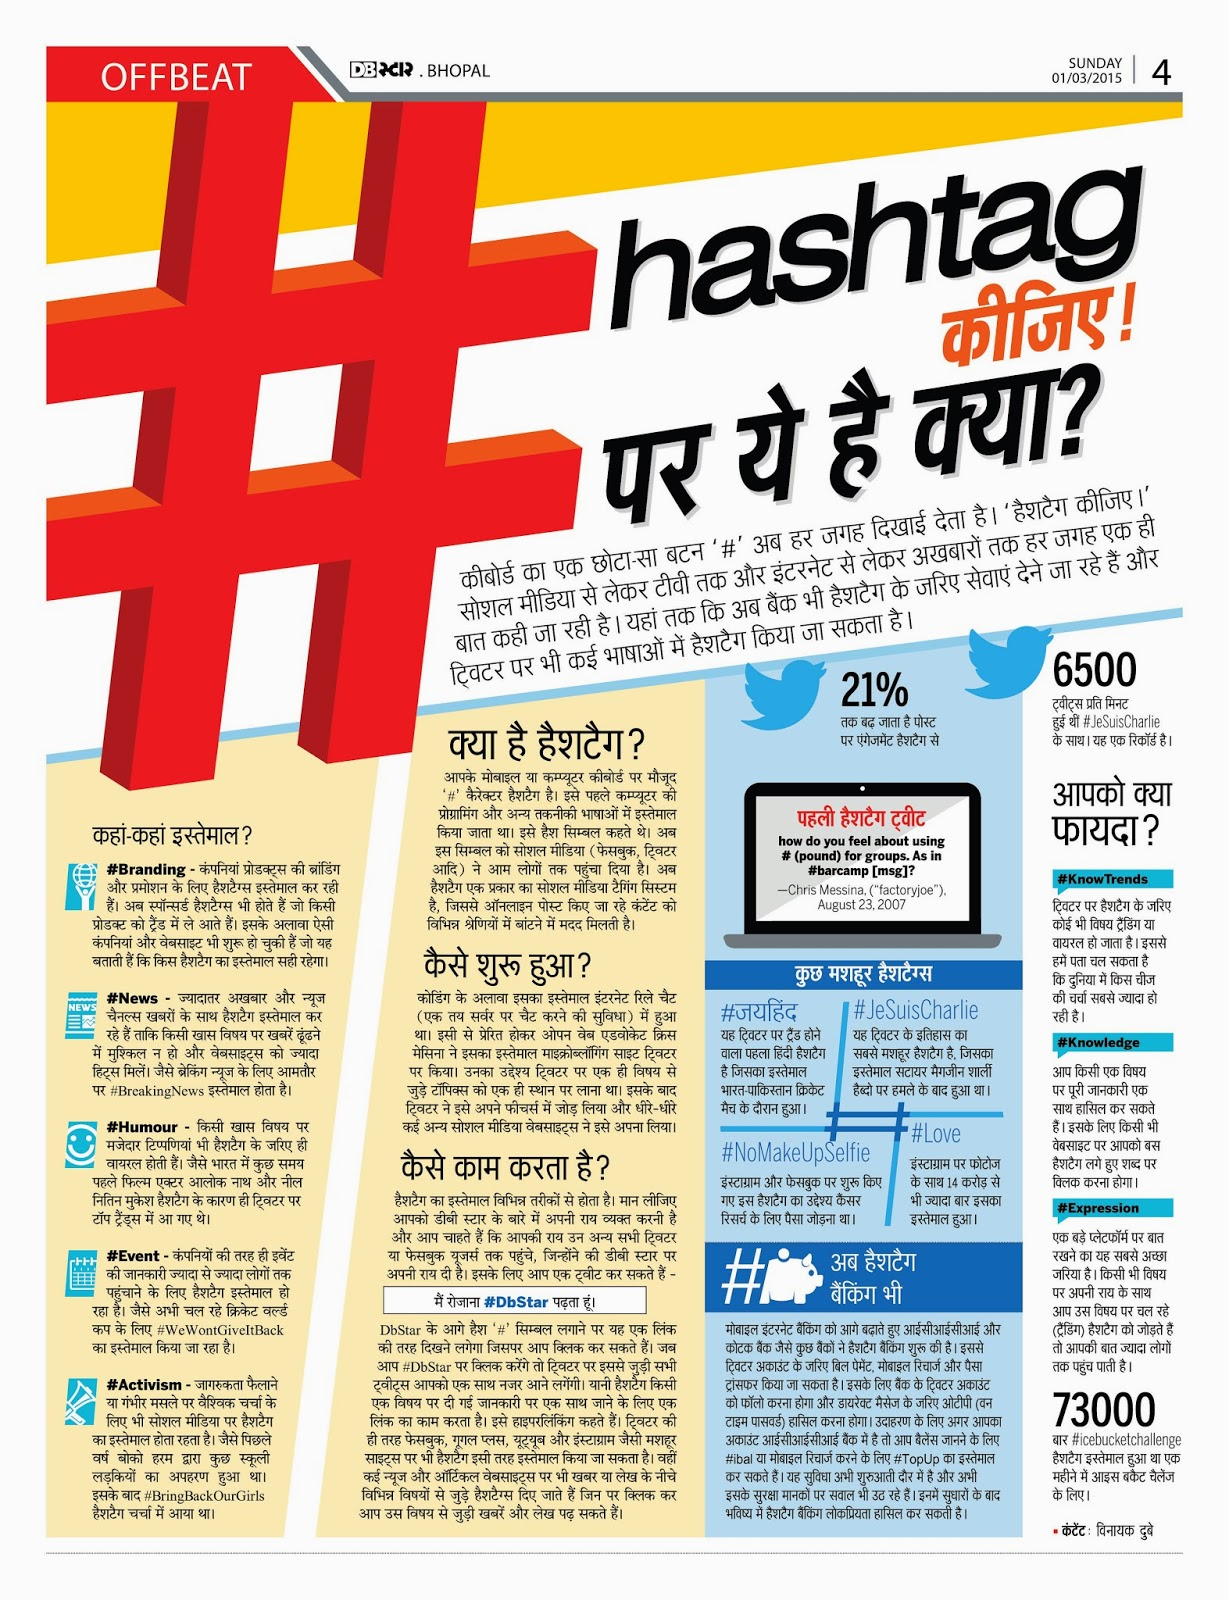 how to use hashtags in hindi